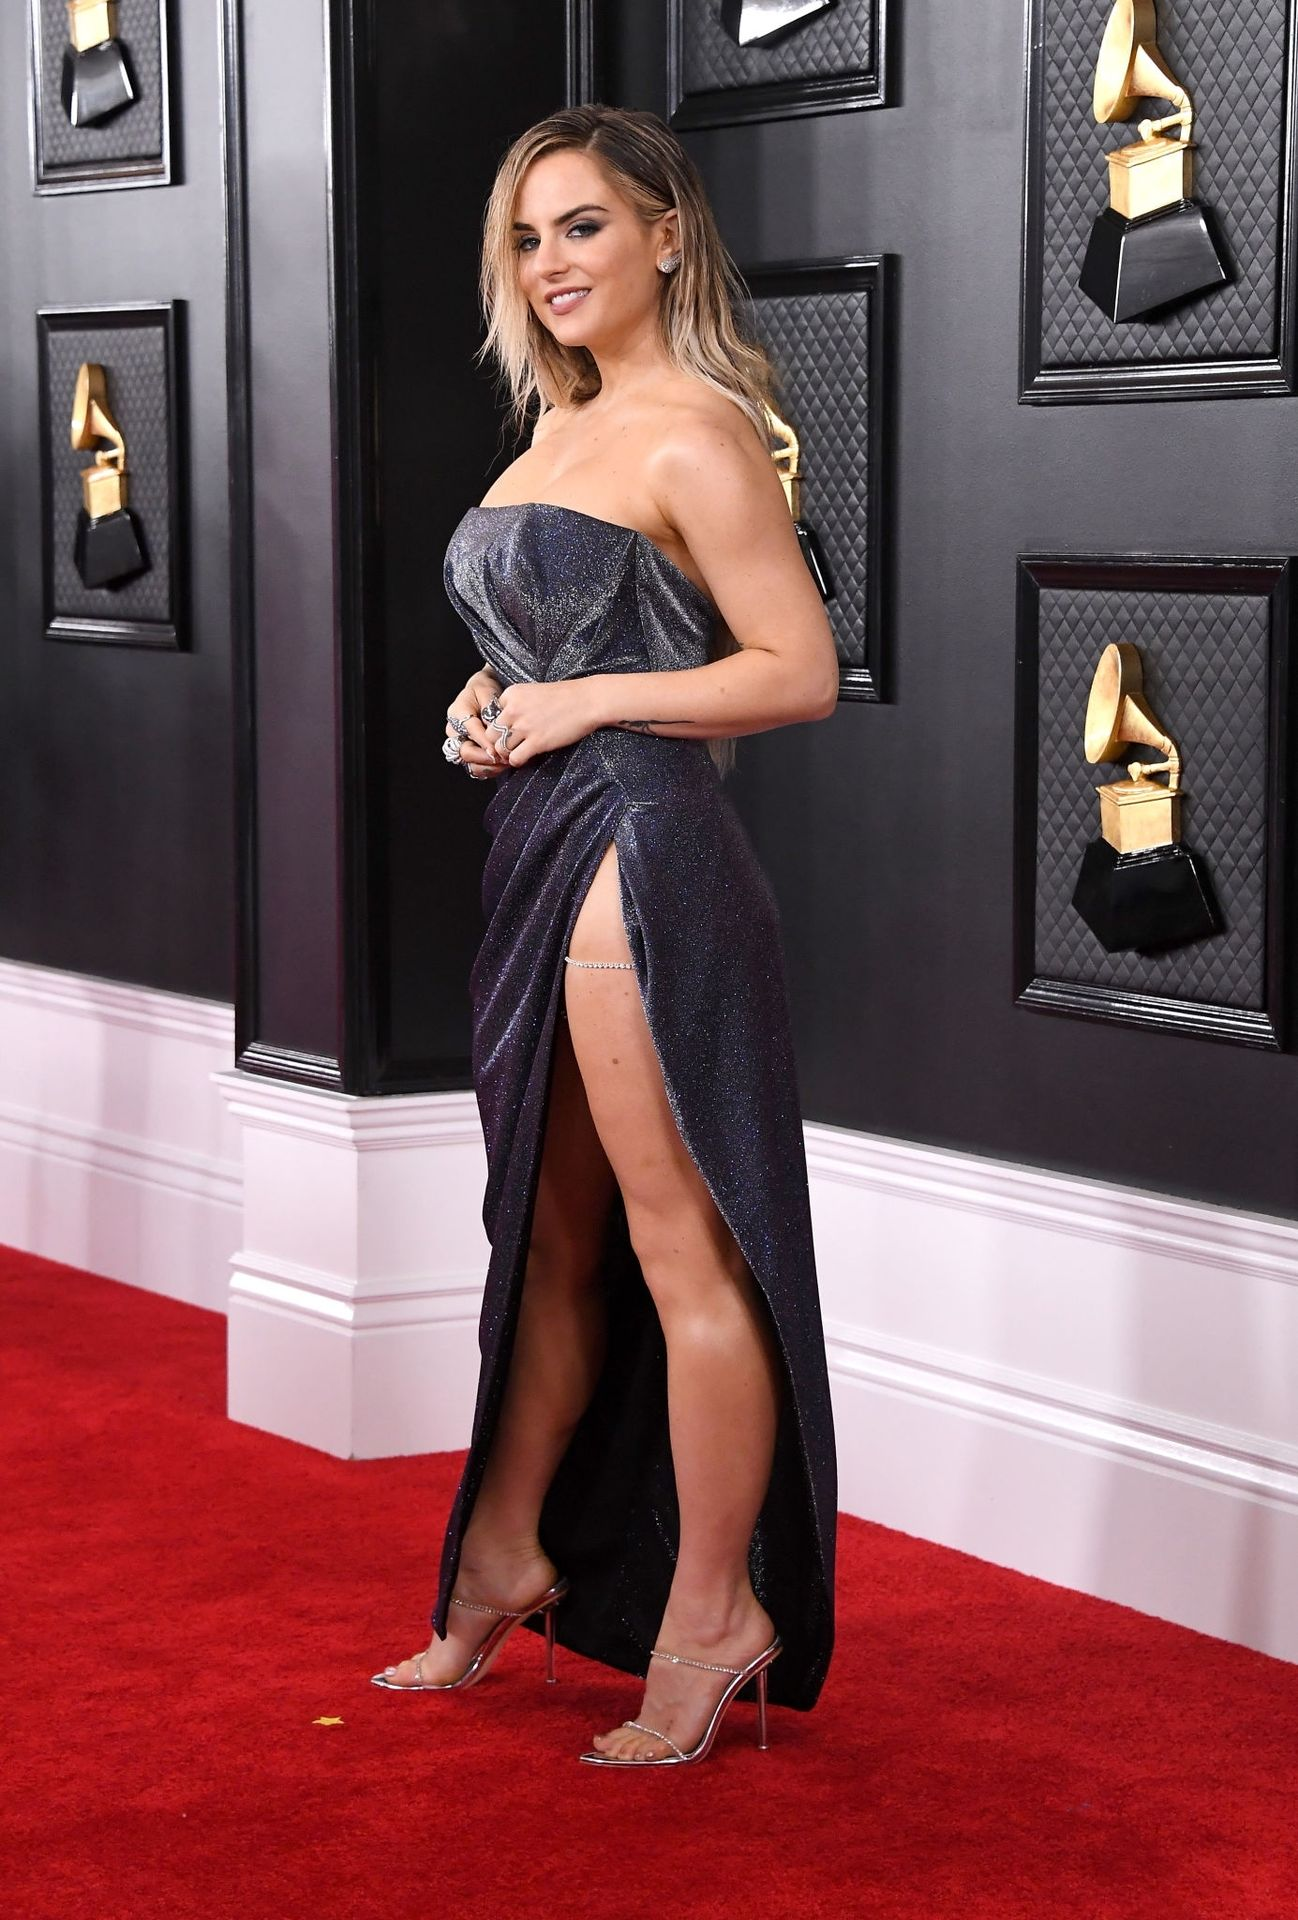 Jojo Shows Her Legs And Cleavage At The 62nd Annual Grammy Awards 0030